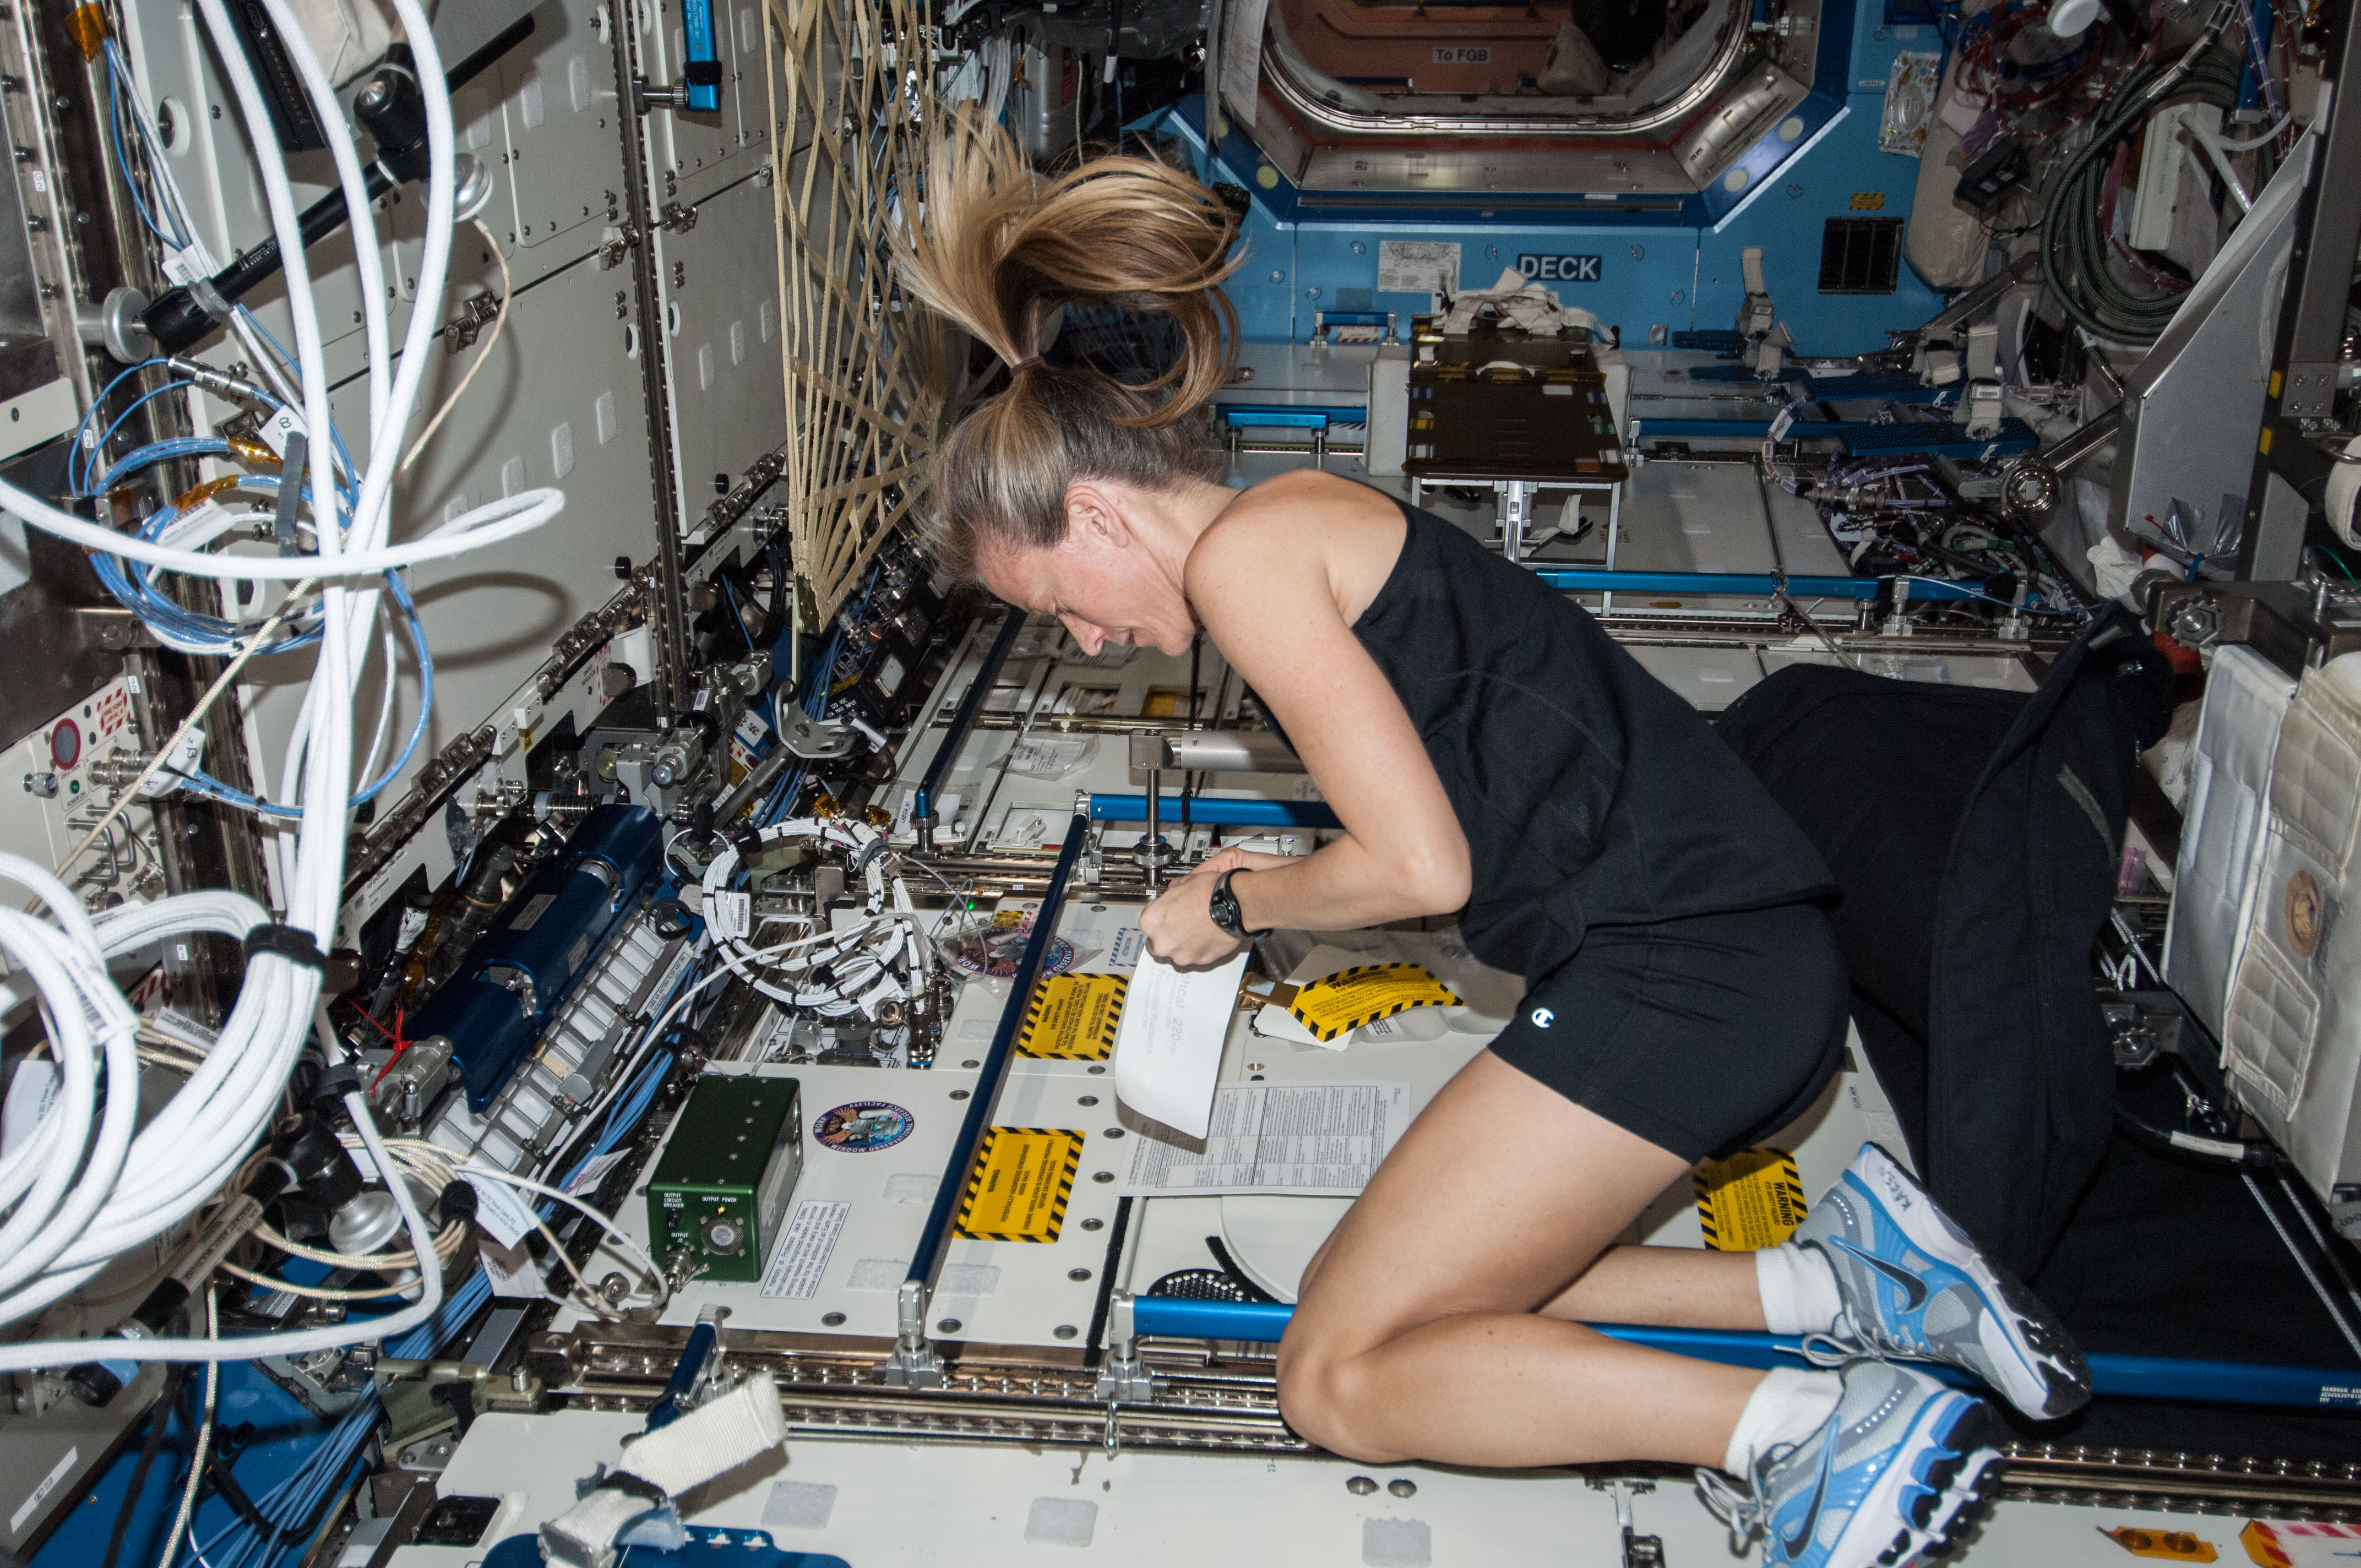 1000+ images about Space: Station (ISS) on Pinterest